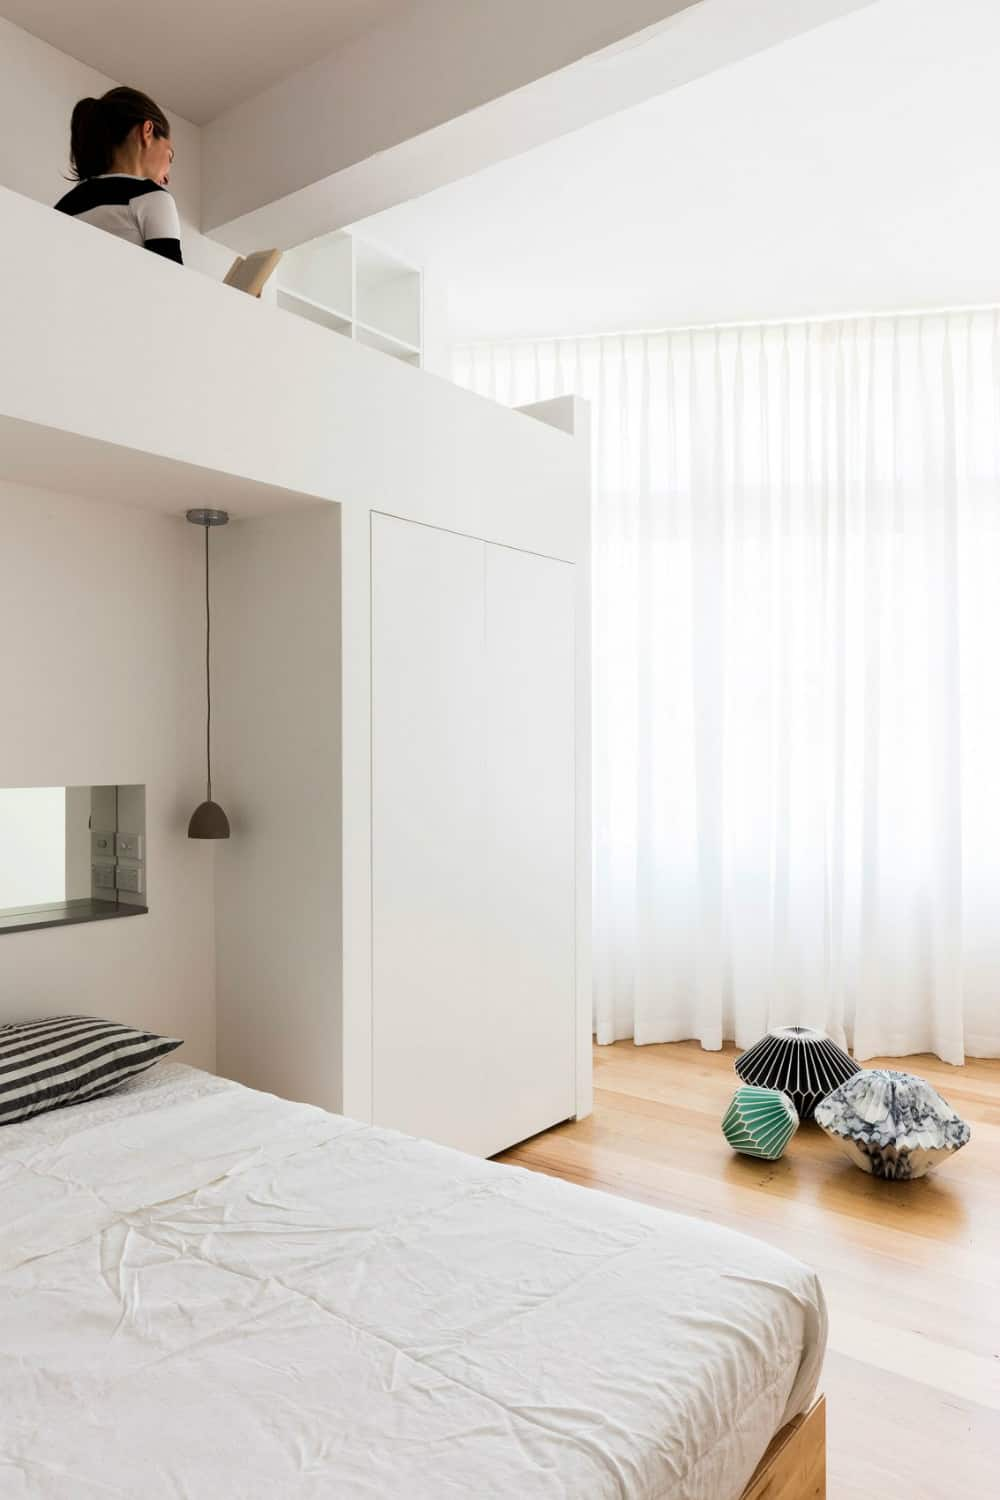 Bedroom with a loft reading nook